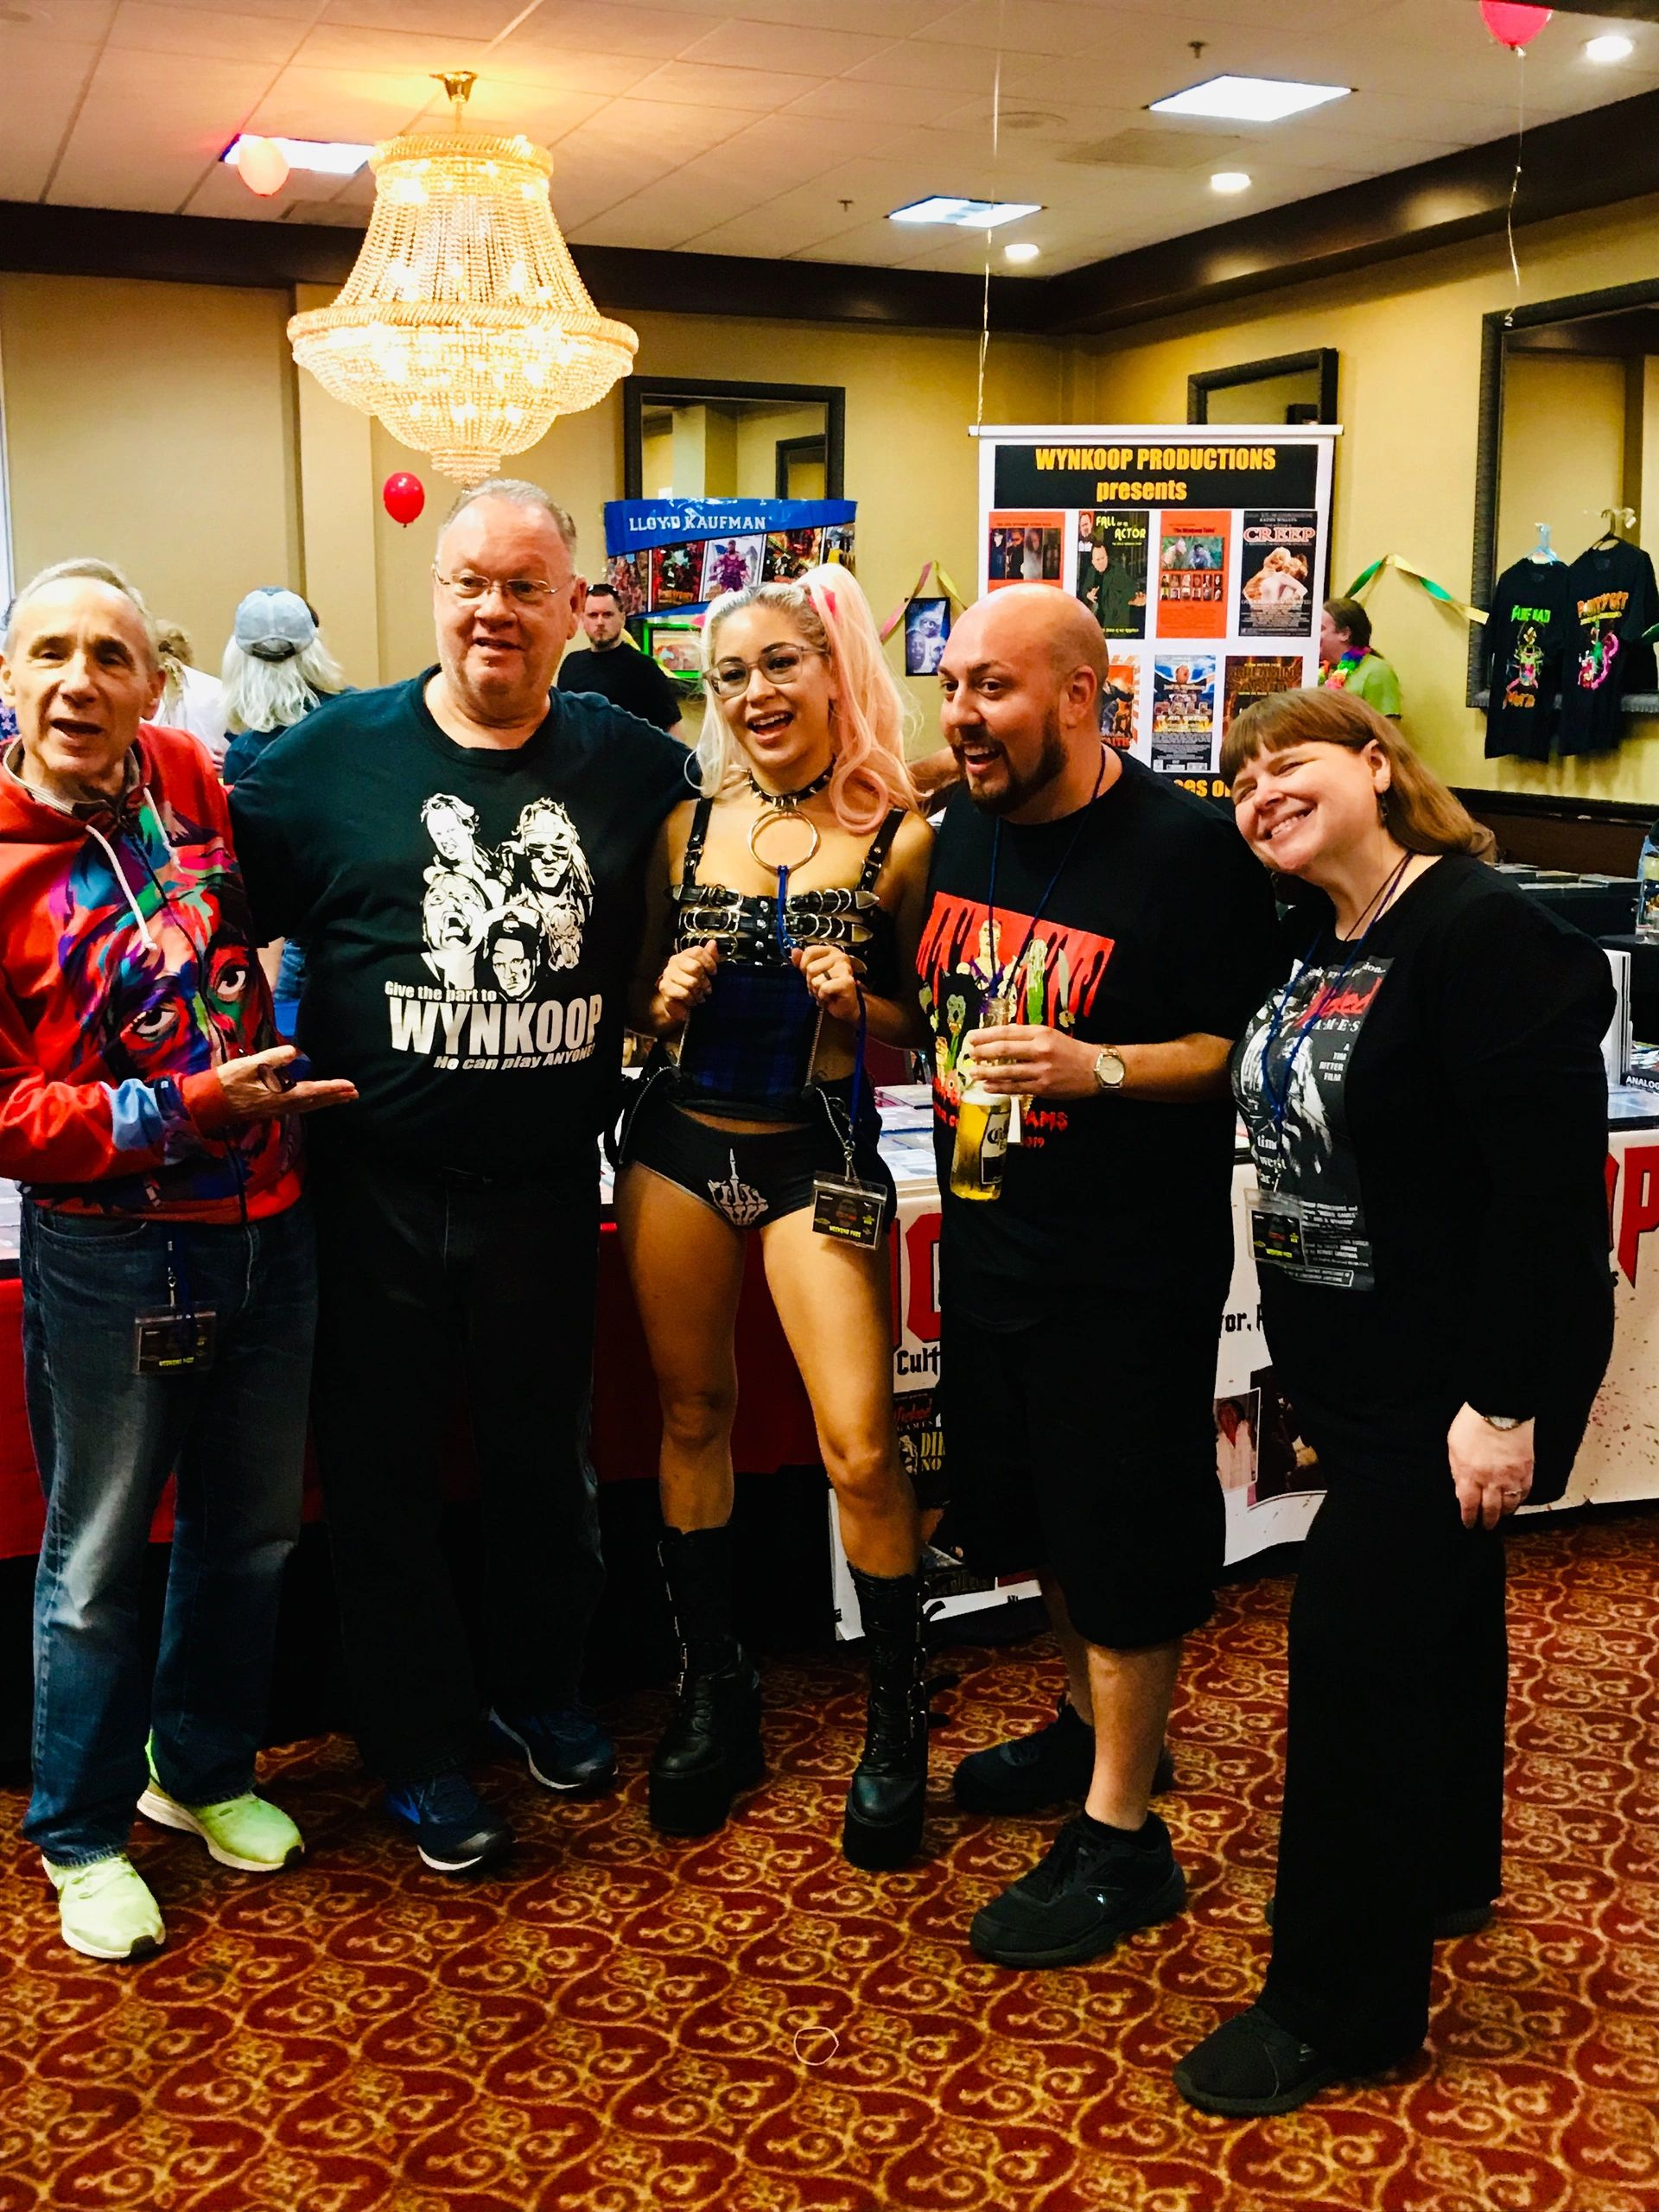 "{""blocks"":[{""key"":""97vbh"",""text"":""Left to Right:\nLLOYD KAUFMAN, JOEL WYNKOOP, SUSHII, SEAN DONOHUE and KATHERINE WYNKOOP"",""type"":""unstyled"",""depth"":0,""inlineStyleRanges"":[{""offset"":15,""length"":71,""style"":""BOLD""}],""entityRanges"":[],""data"":{}},{""key"":""bgl4b"",""text"":"""",""type"":""unstyled"",""depth"":0,""inlineStyleRanges"":[],""entityRanges"":[],""data"":{}}],""entityMap"":{}}"